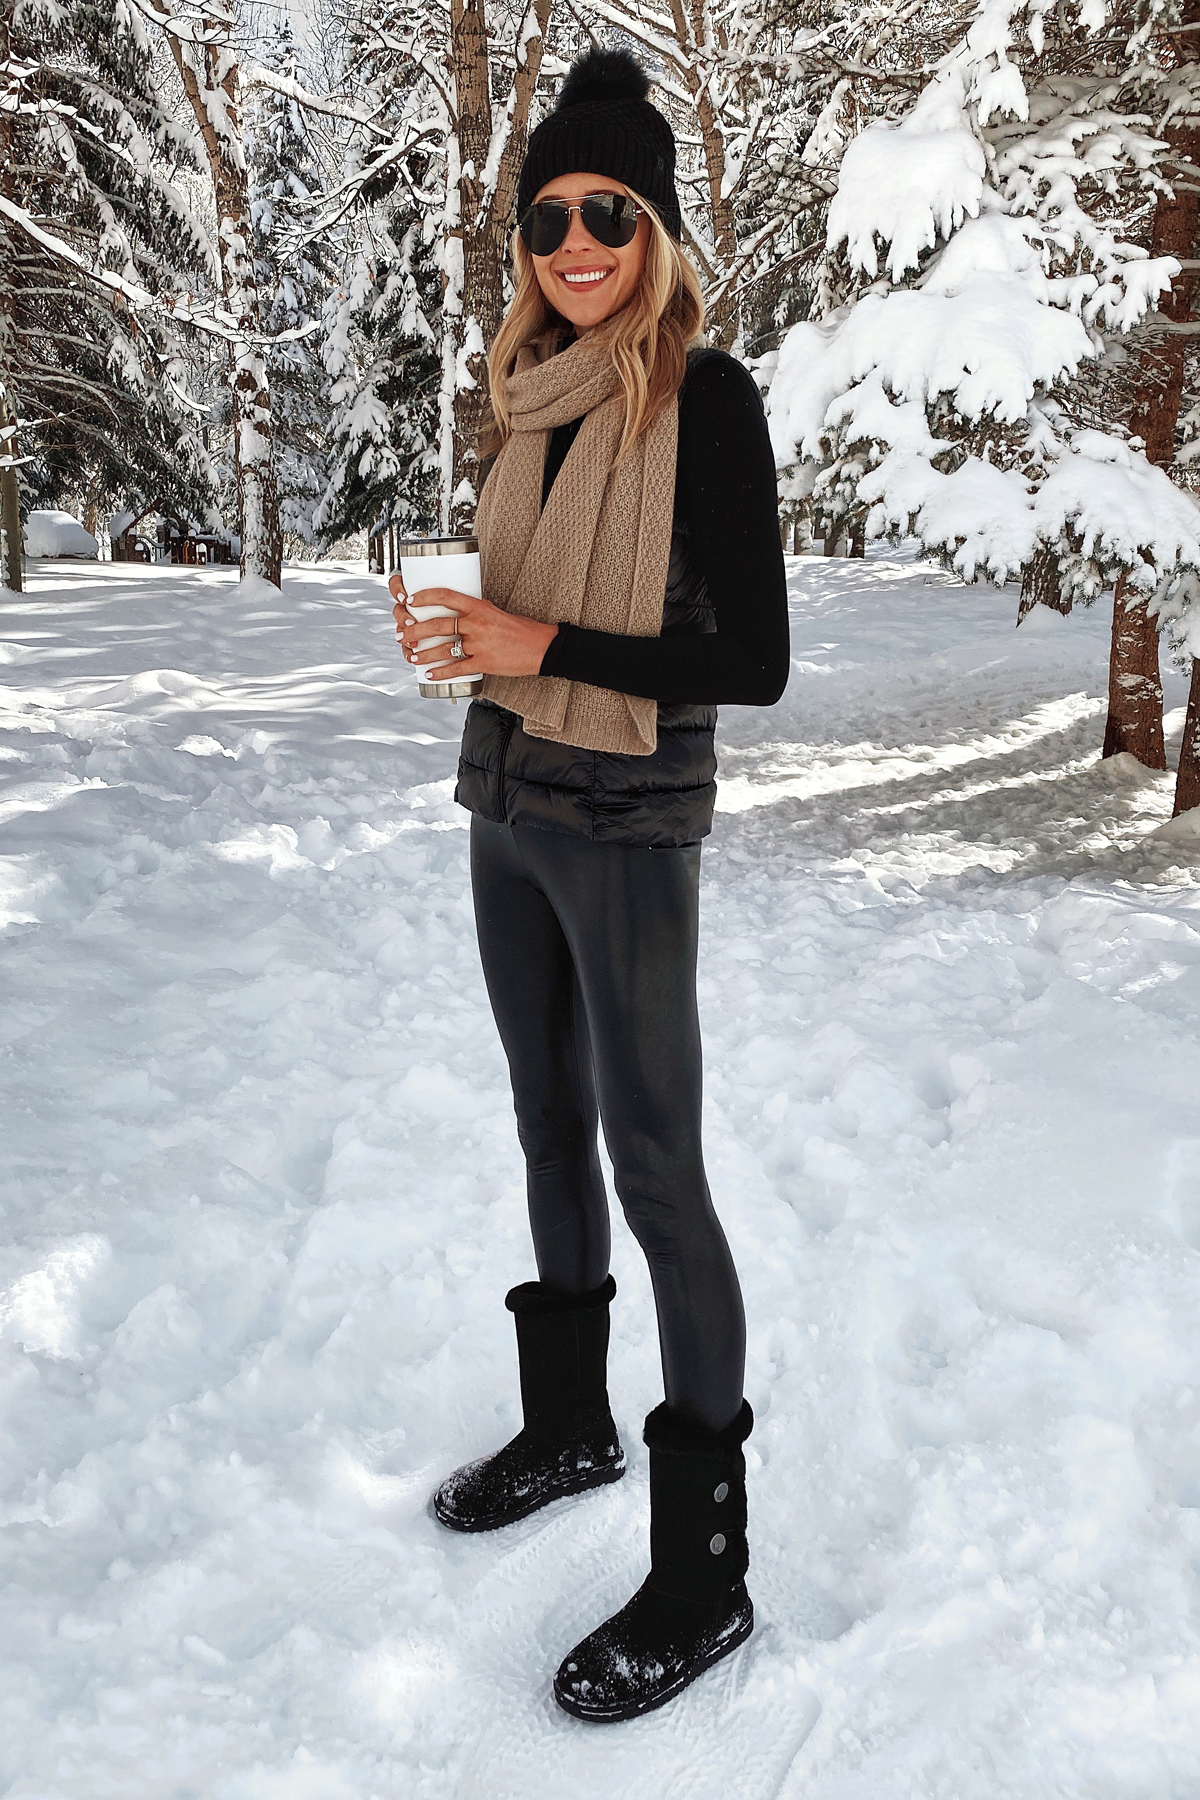 Fashion Jackson Wearing Black Puffer Vest Tan Cashmere Scarf Commando Faux Leather Leggings Winter Boots Ski Trip Outfit